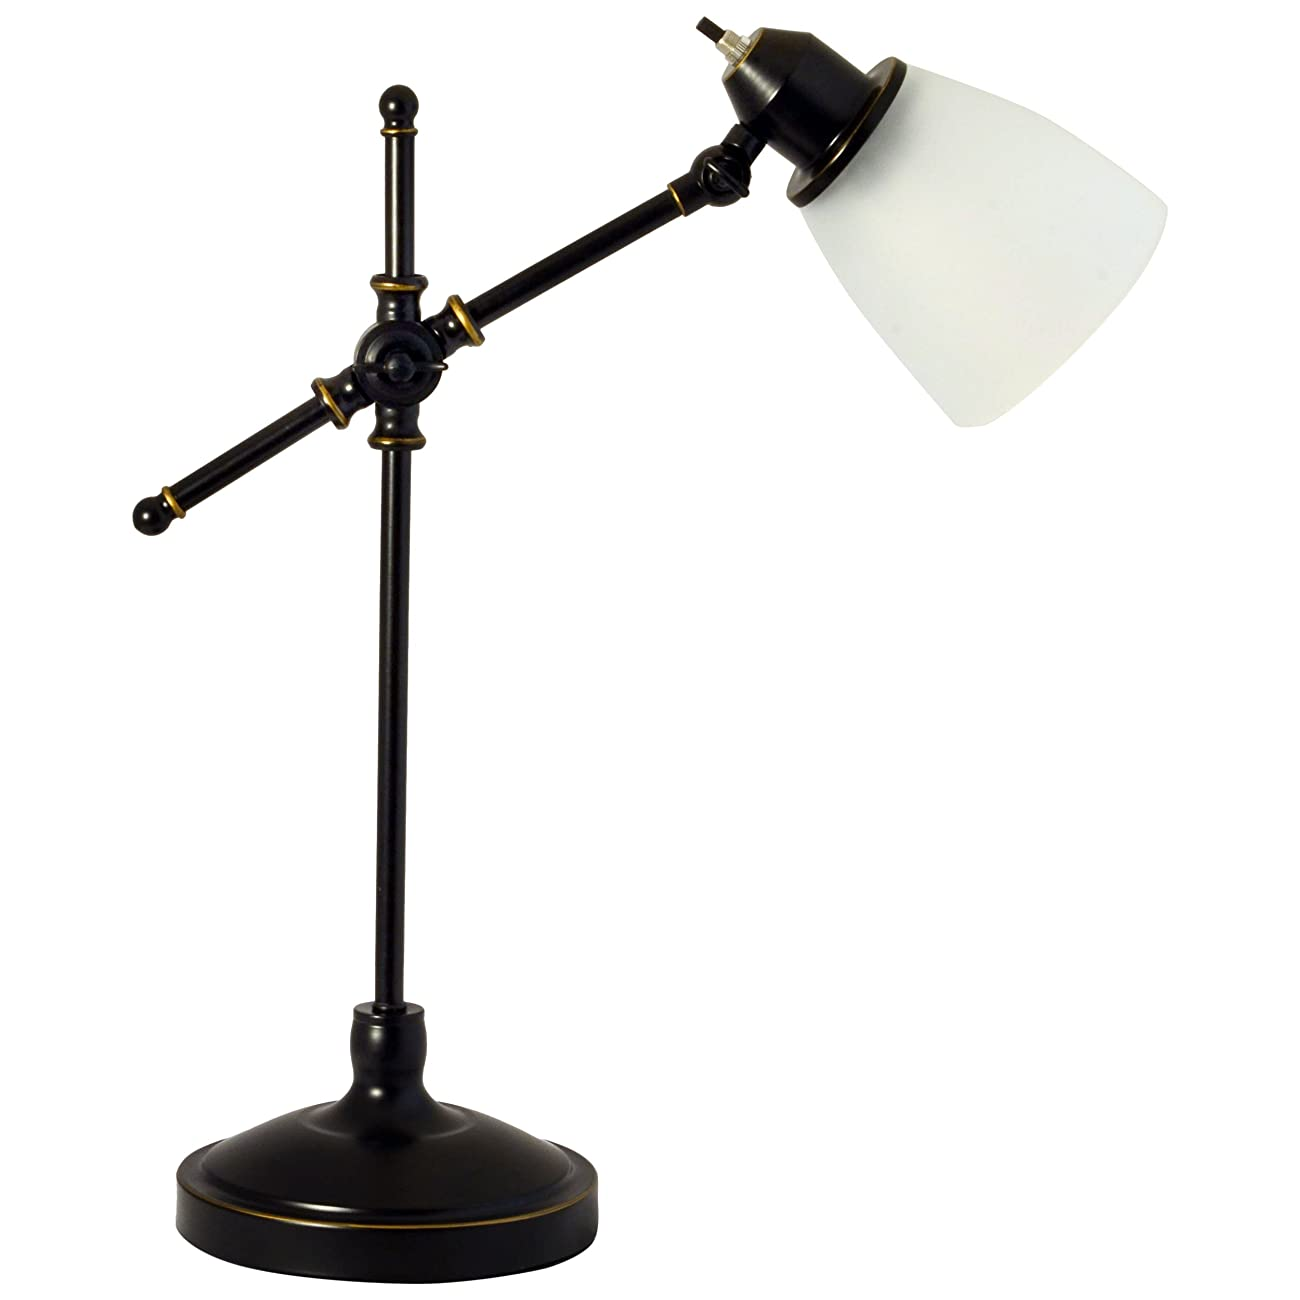 Light Accents Antique Style Desk Lamp with Black with Gold Trim and Frosted White Glass Shade Desk Light 2